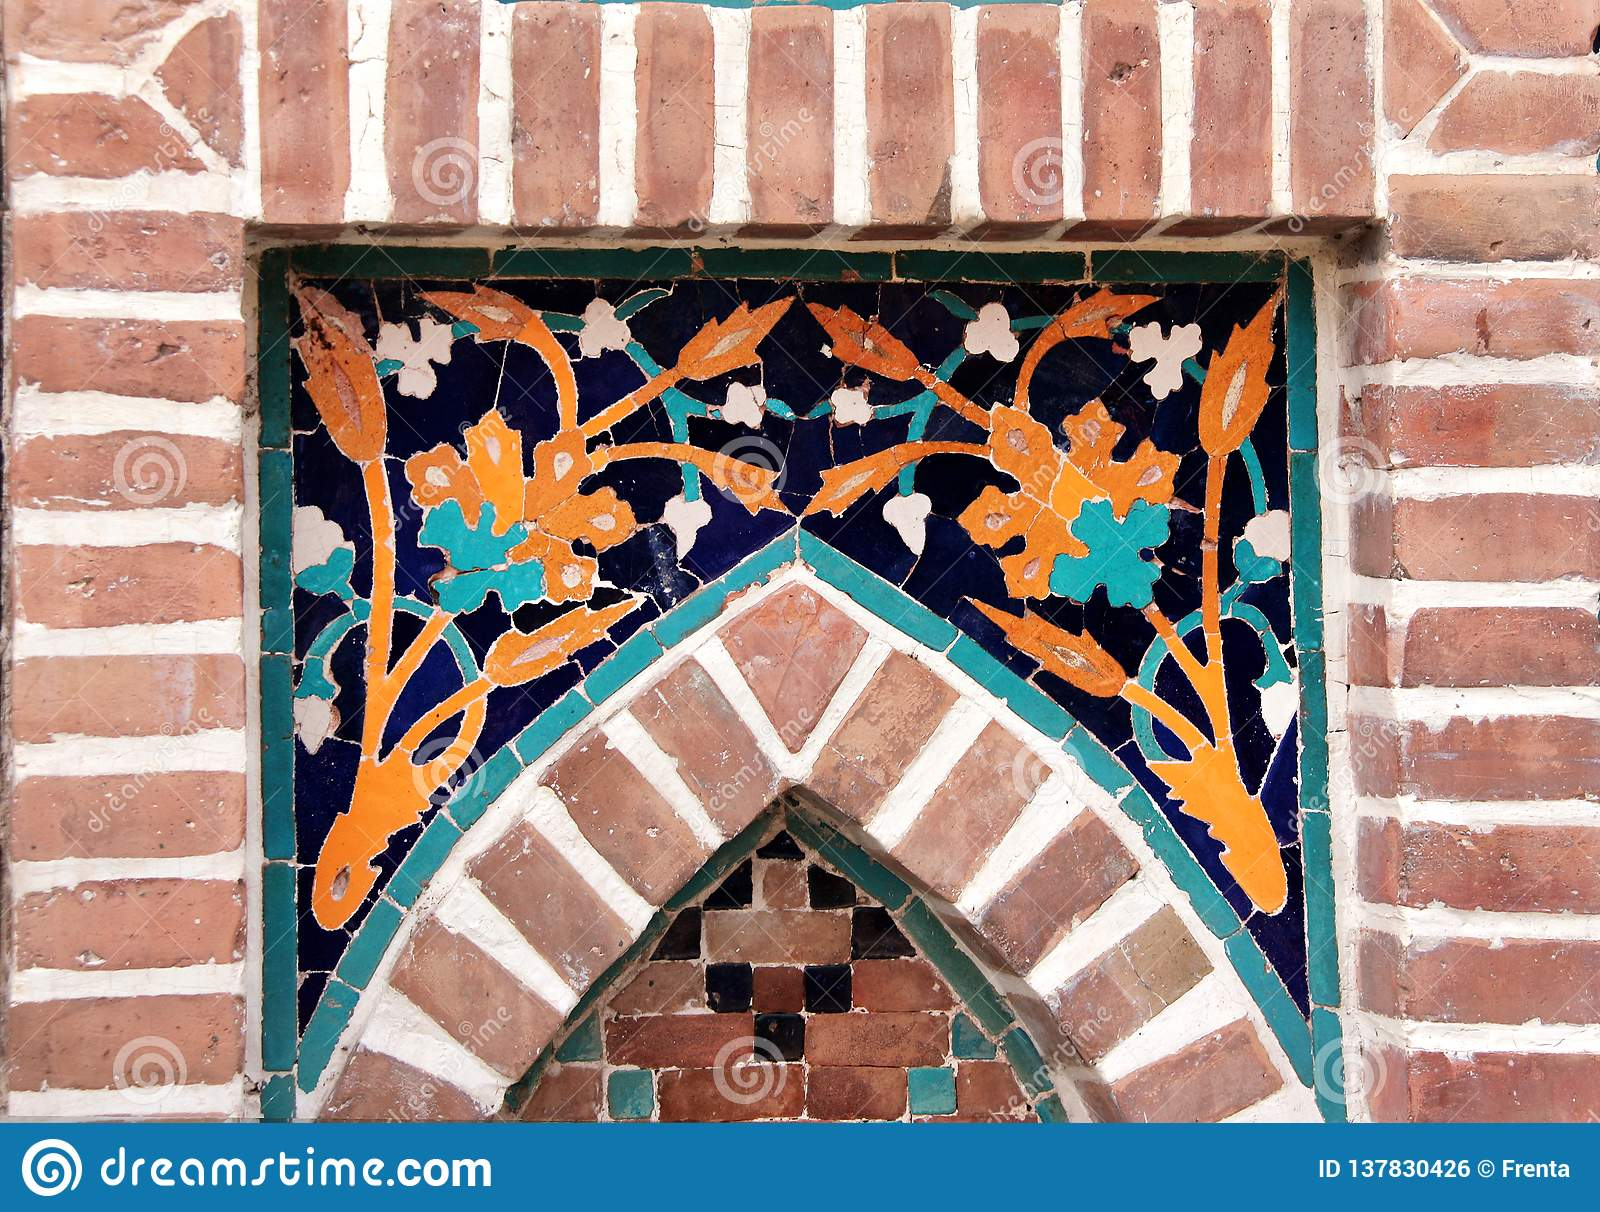 Detail of old mosaic wall with traditional georgian floral pattern